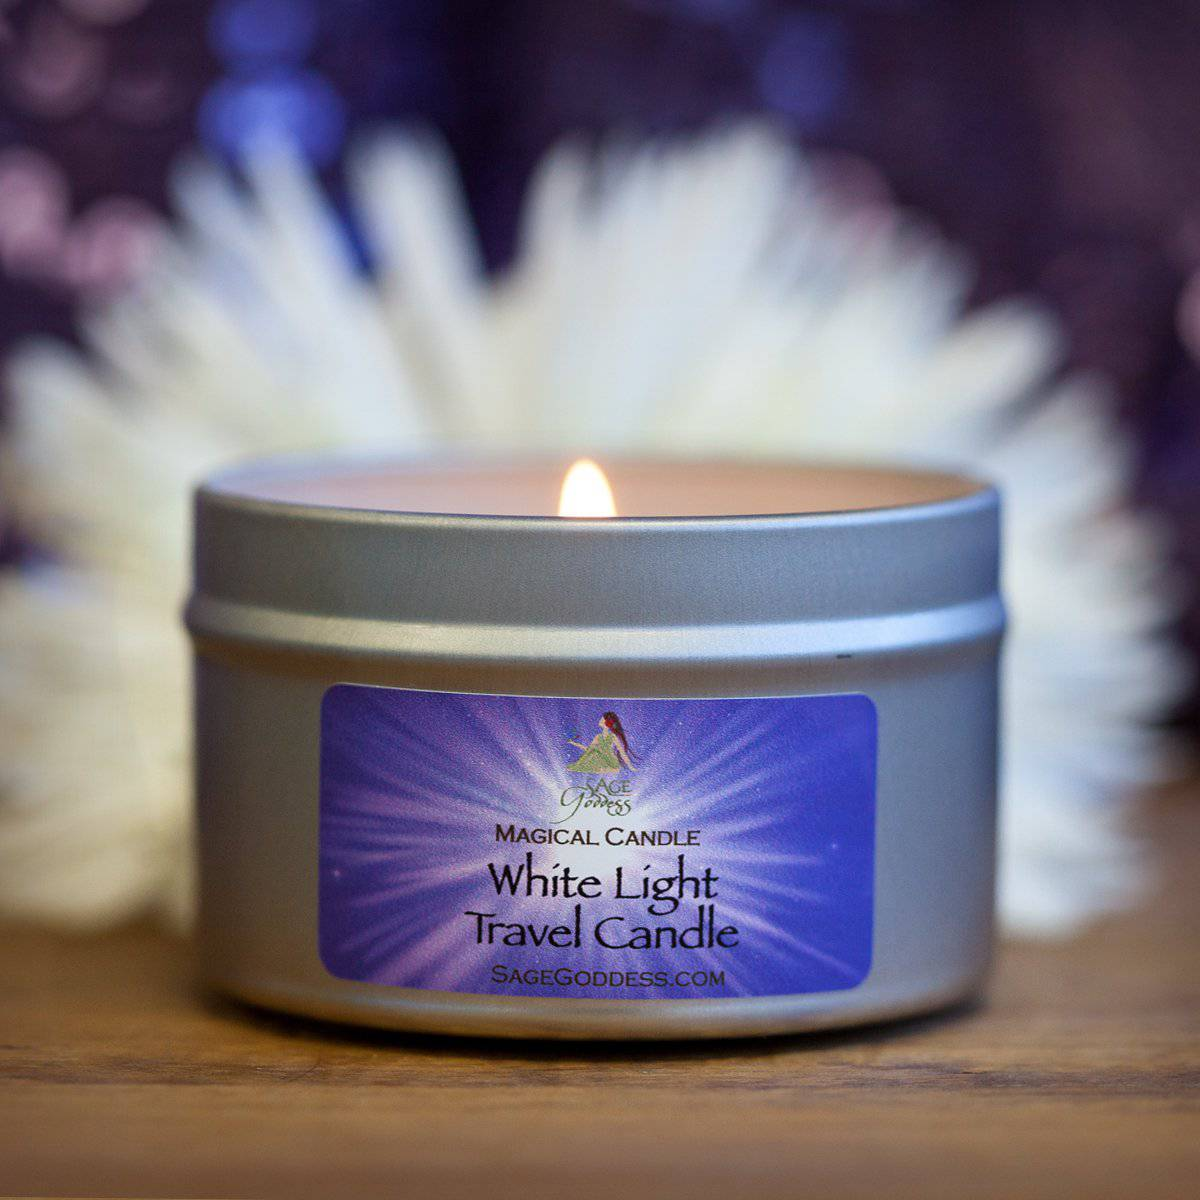 White Light Travel Candle 2_9